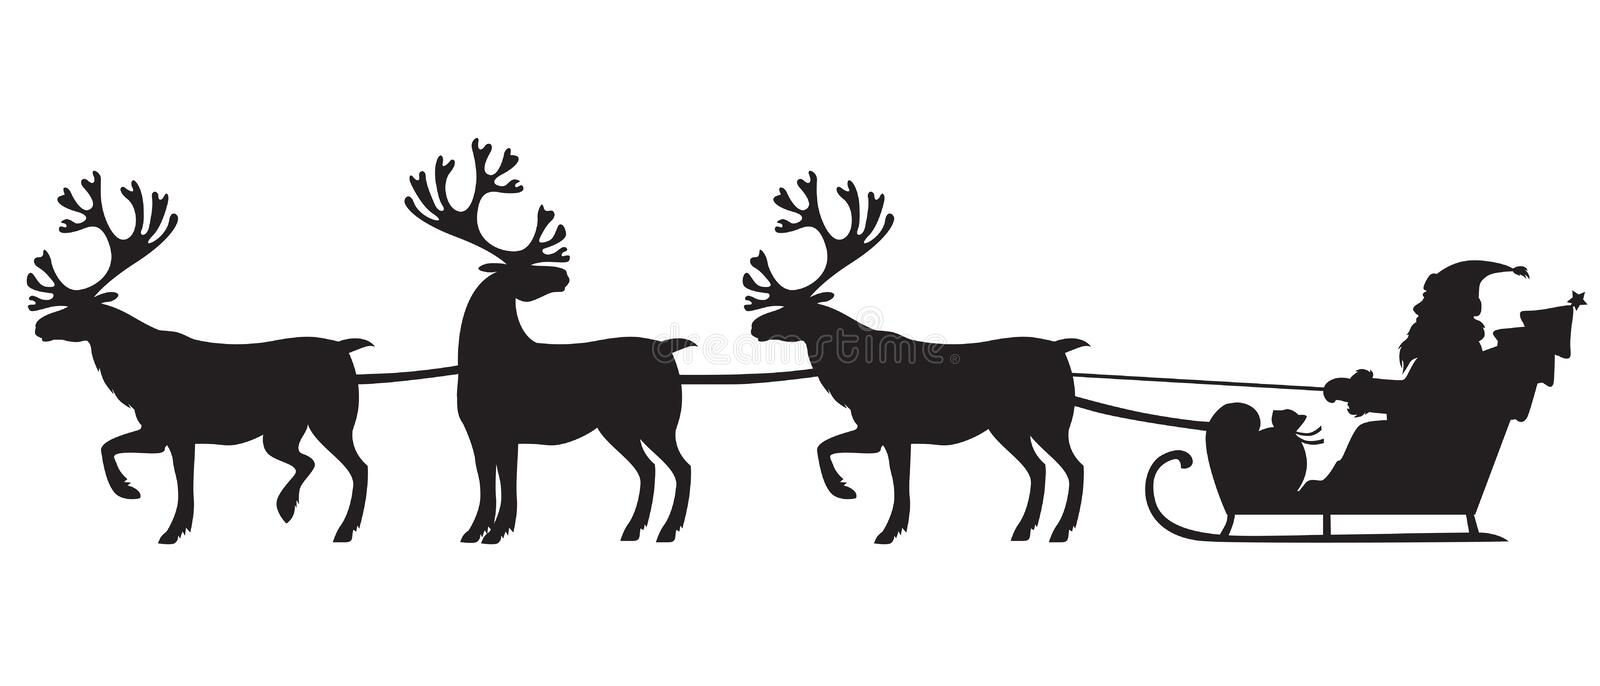 Santa Claus riding a sleigh with reindeers vector illustration